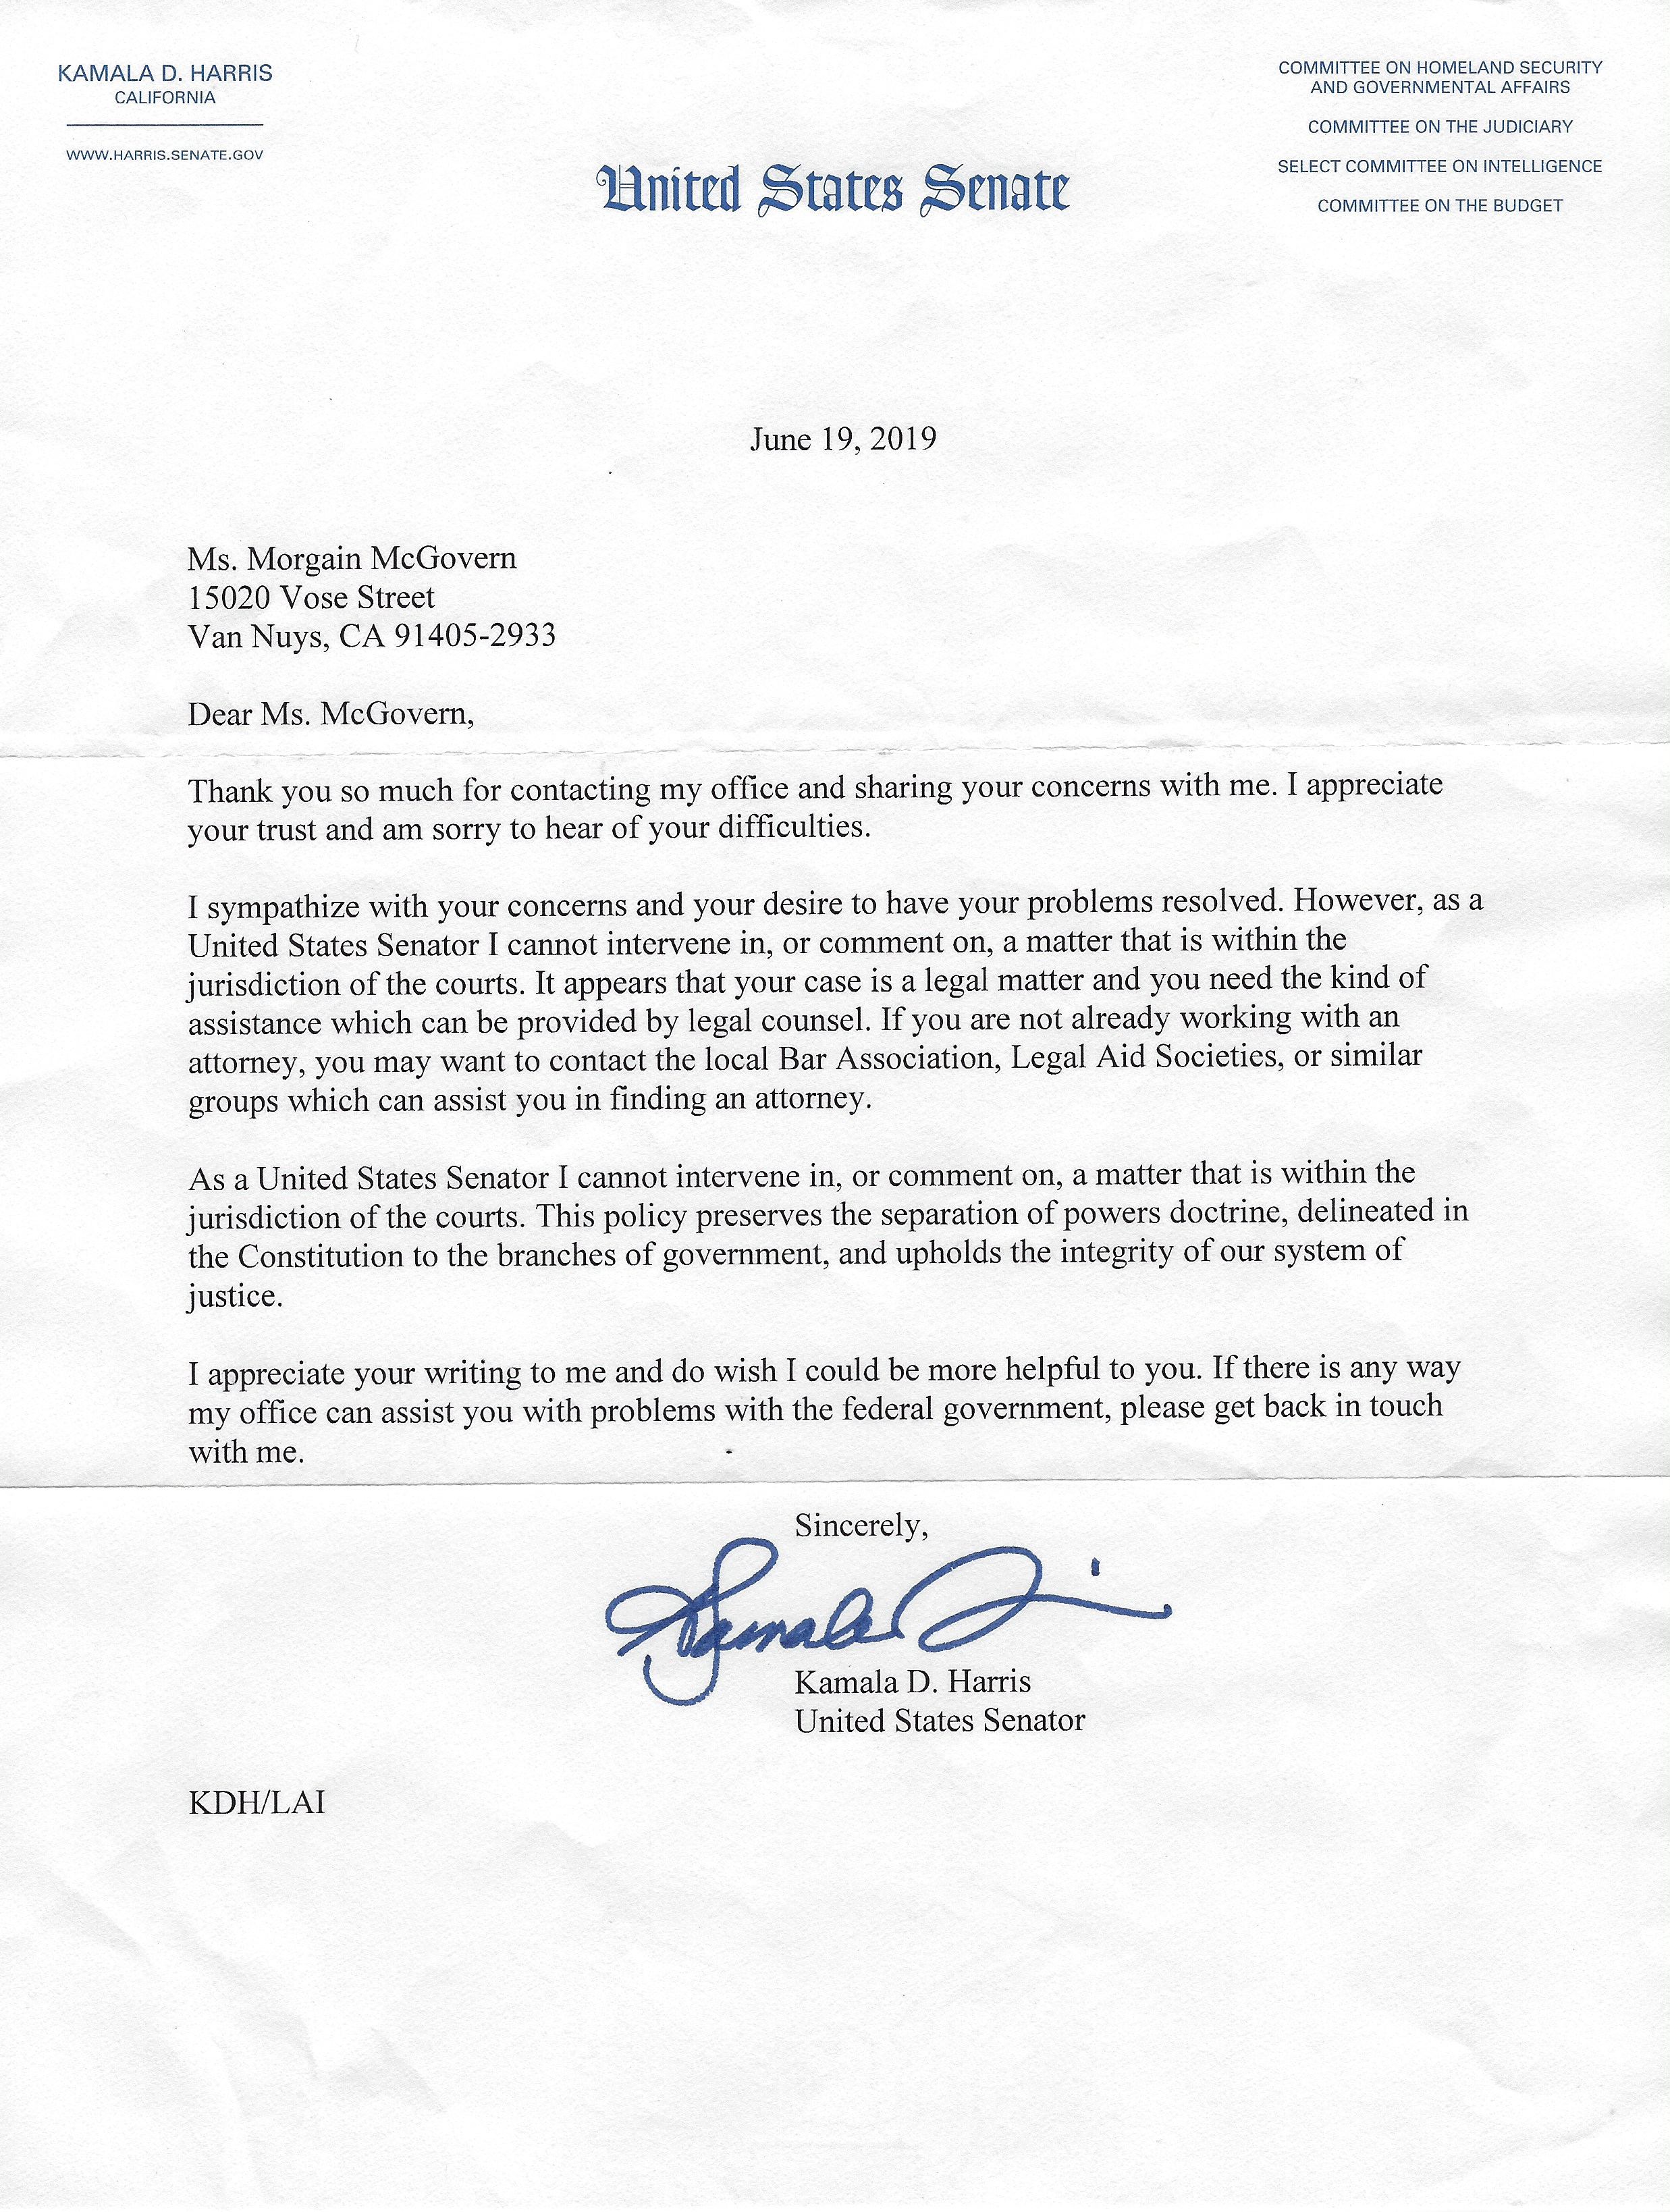 Kamala Harris letter June 19 2019 Golden State Killer